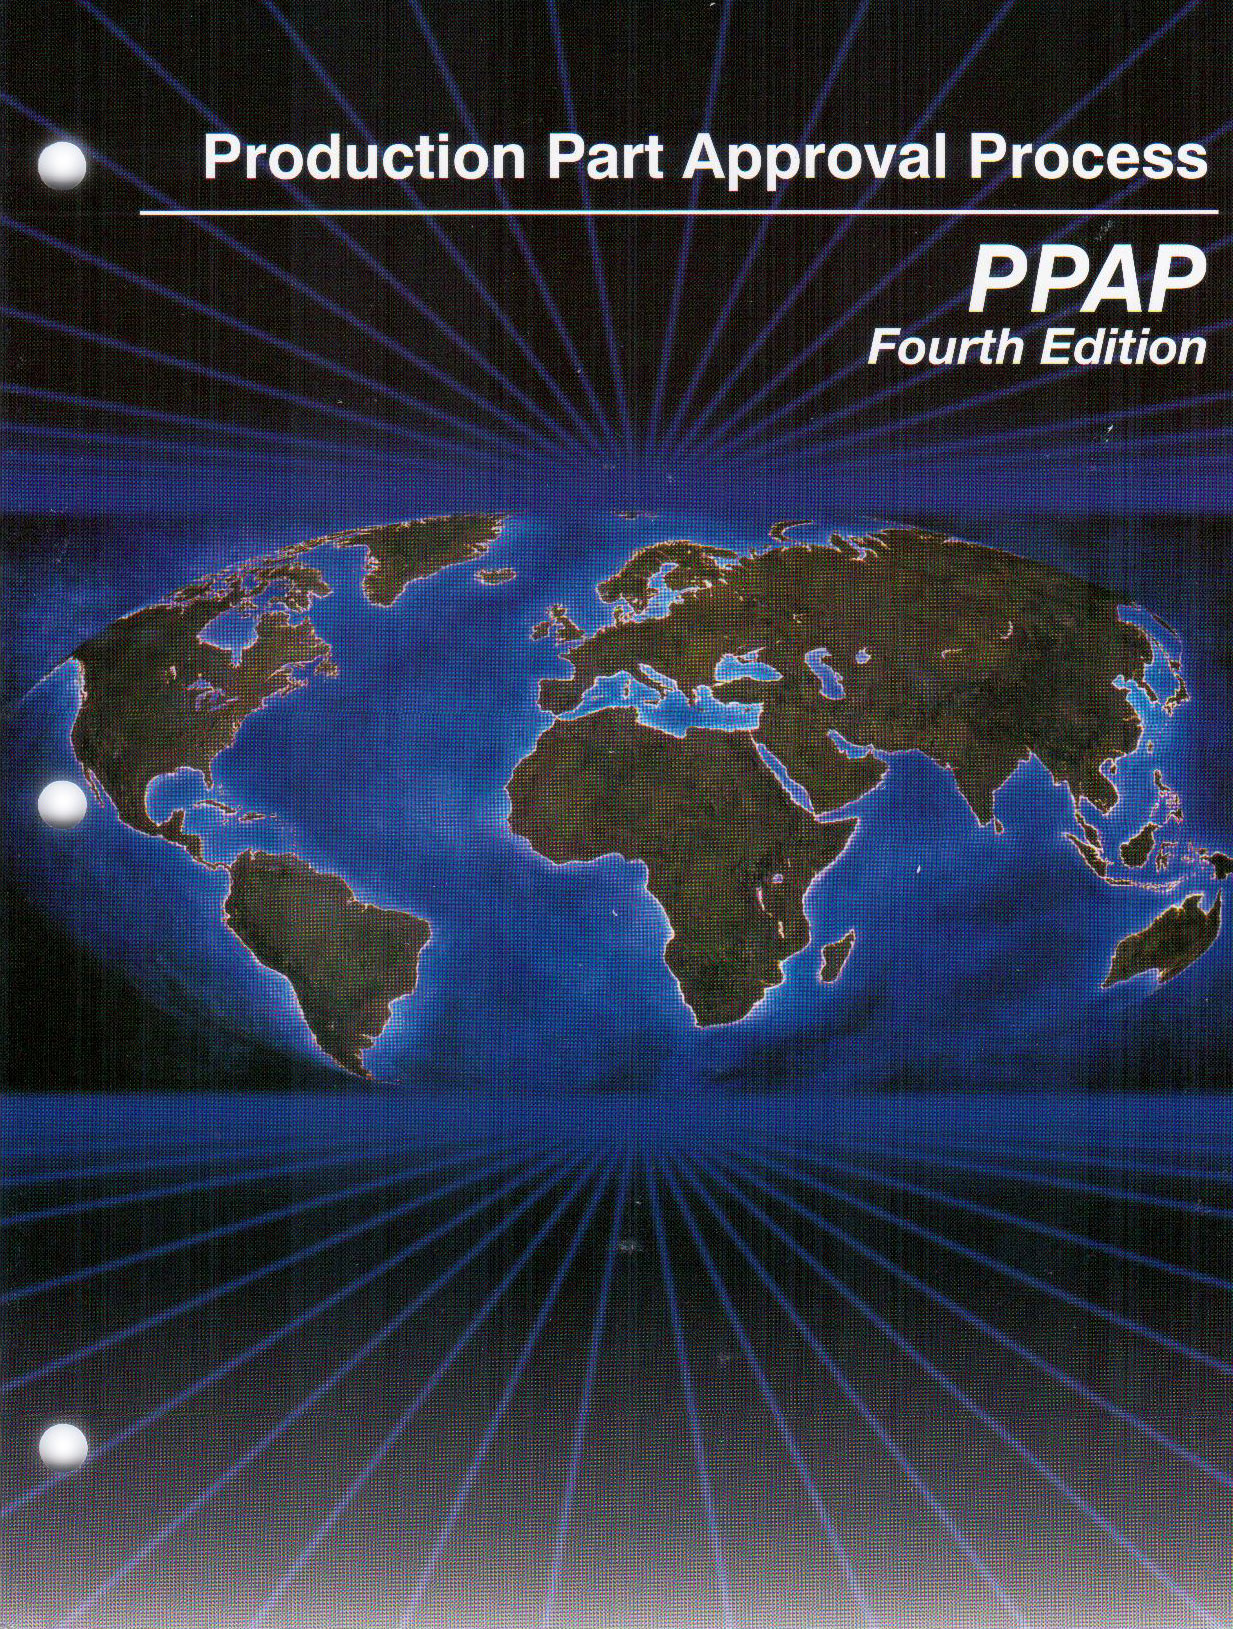 Production Part Approval Process Ppap 4th Edition Aiag 1605340936 9781605340937